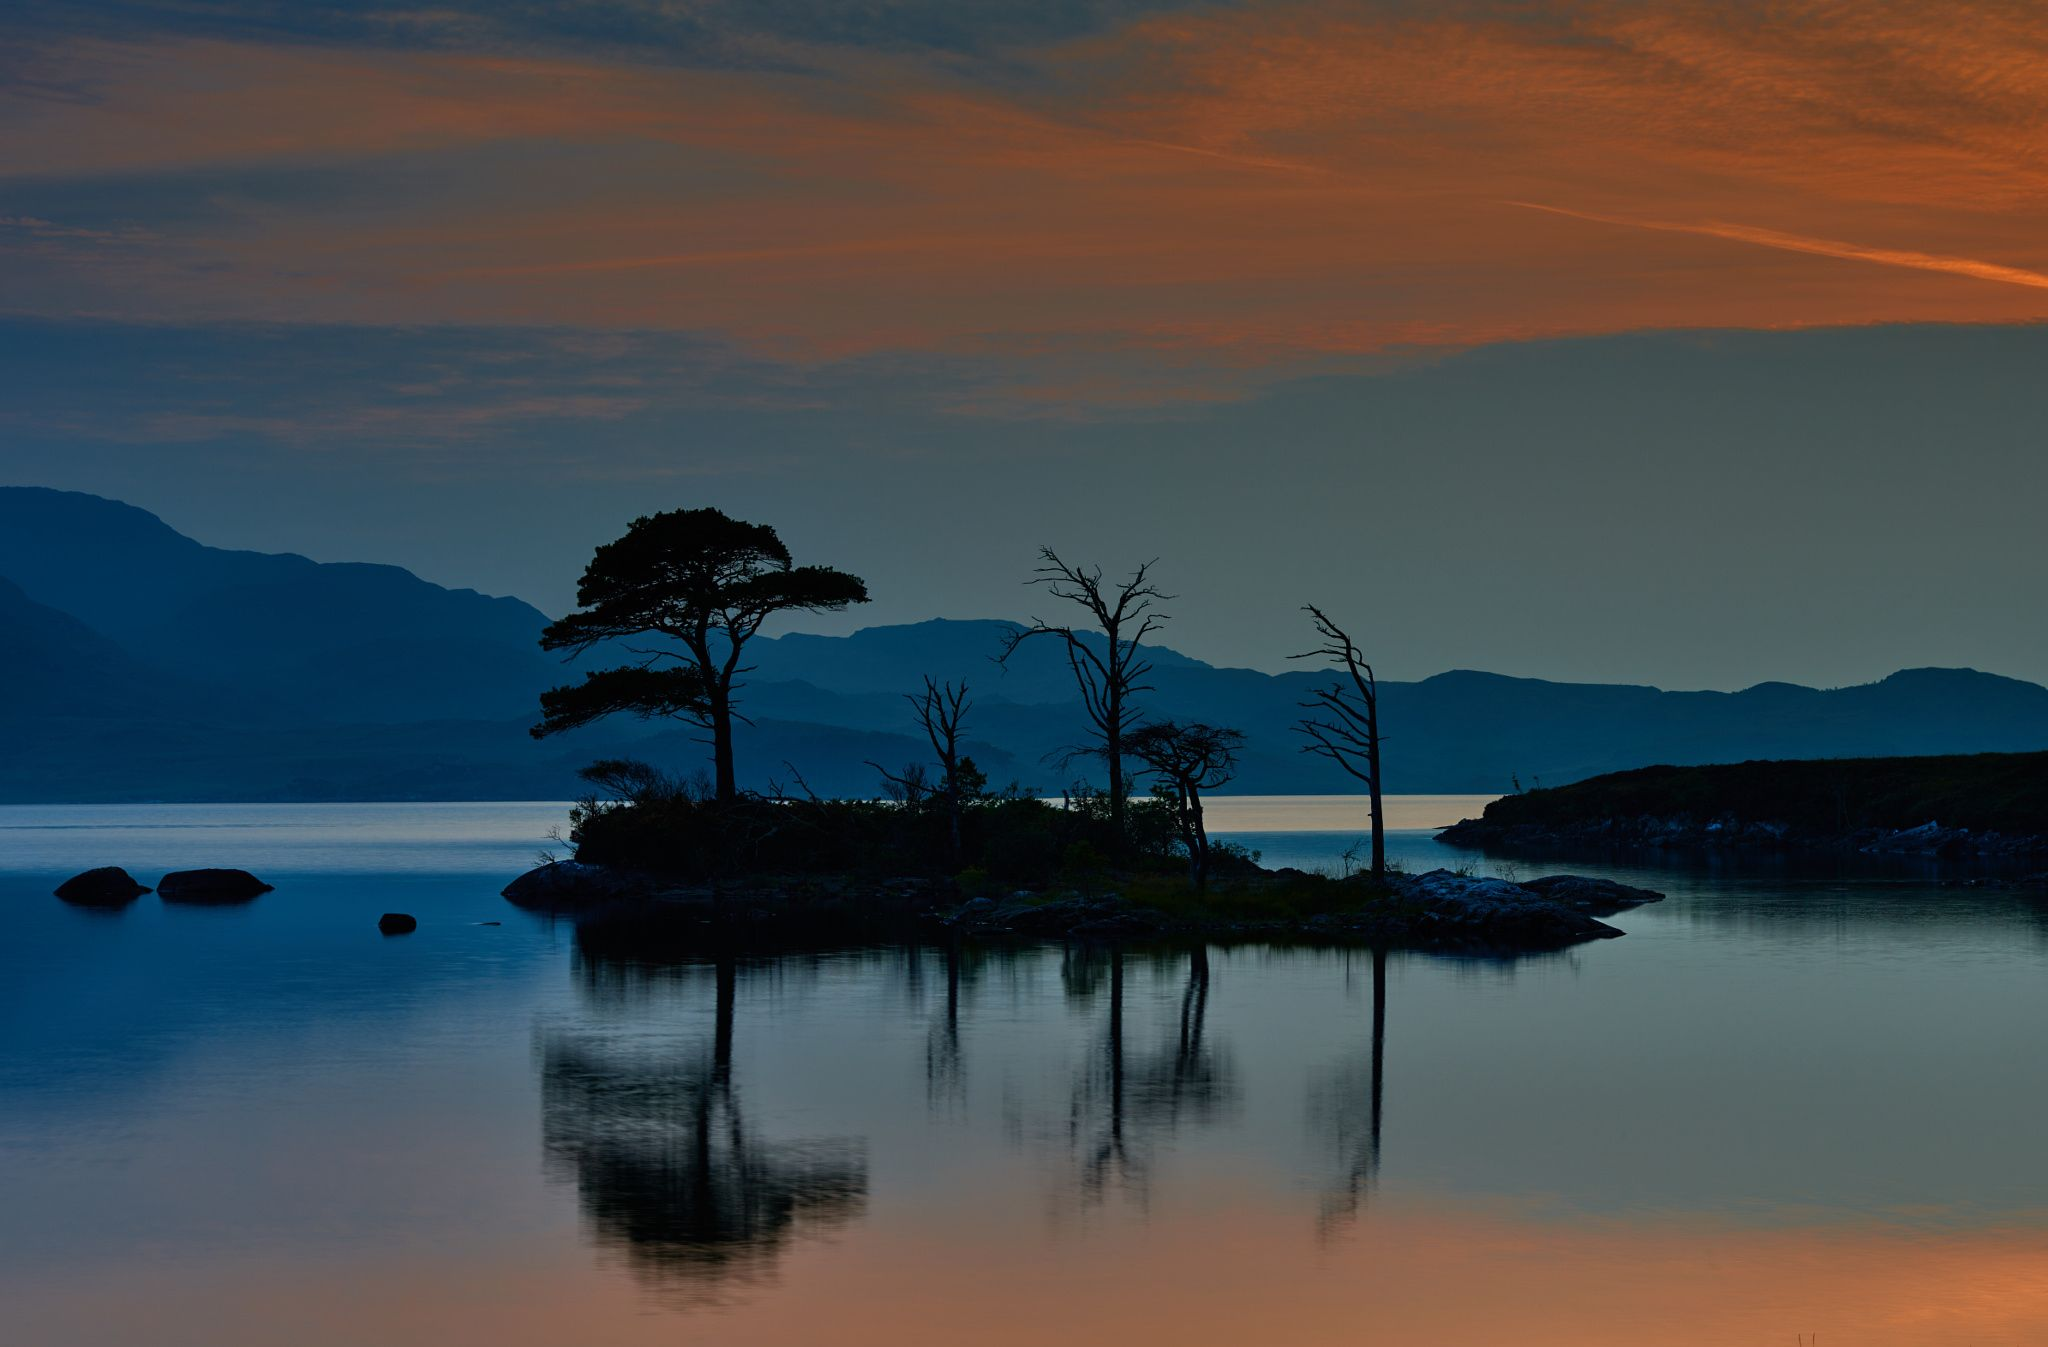 Photograph Sunset at Loch Assynt by Tom Irving on 500px